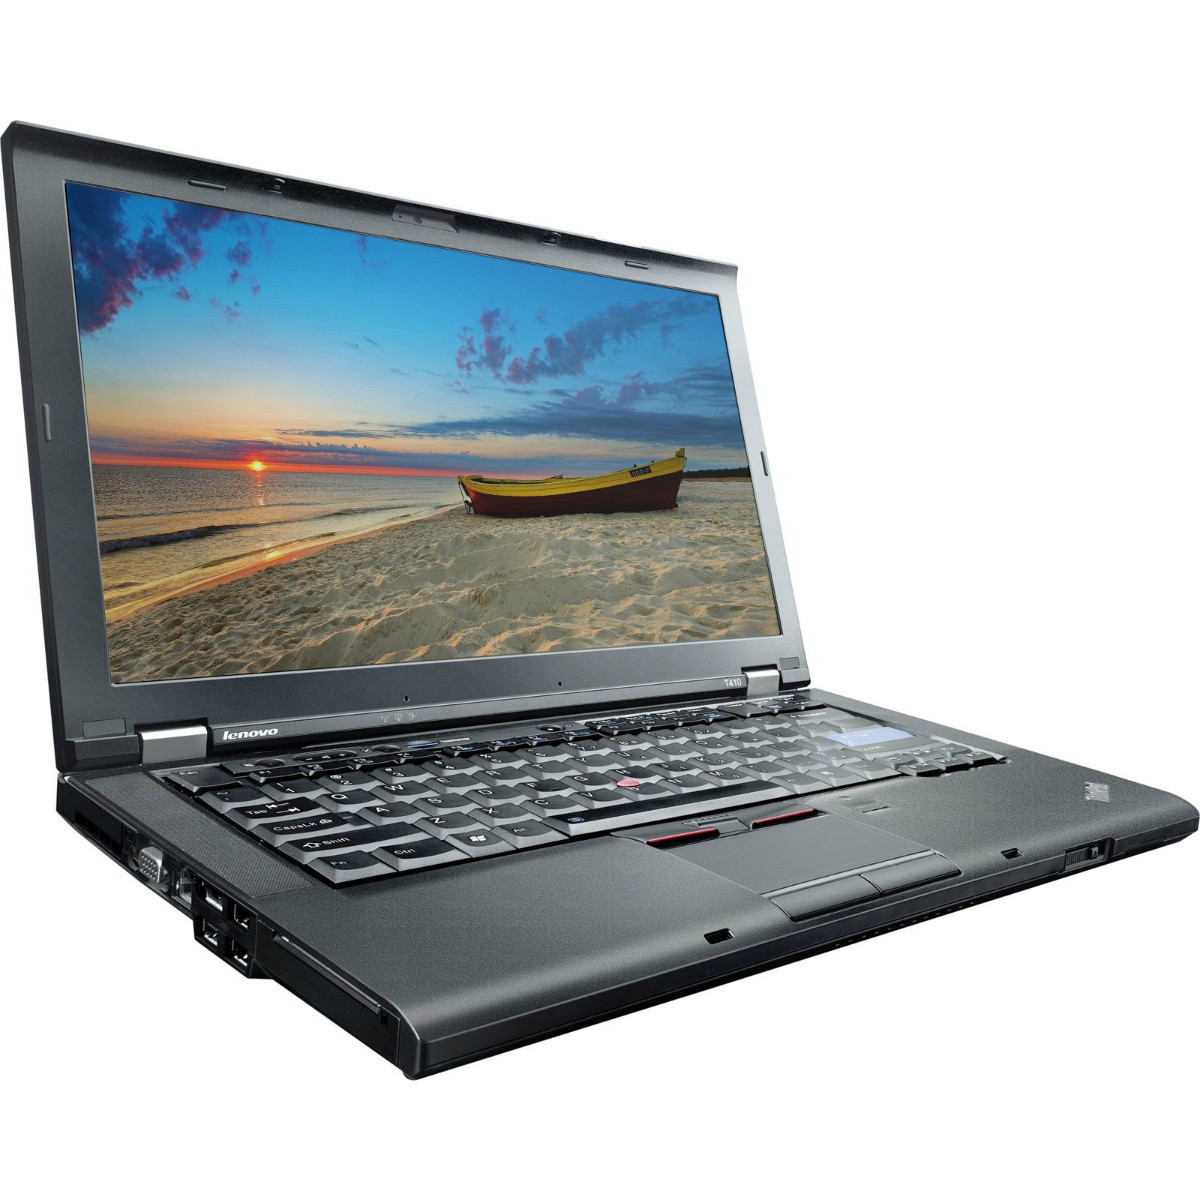 Lenovo Thinkpad T410i left side